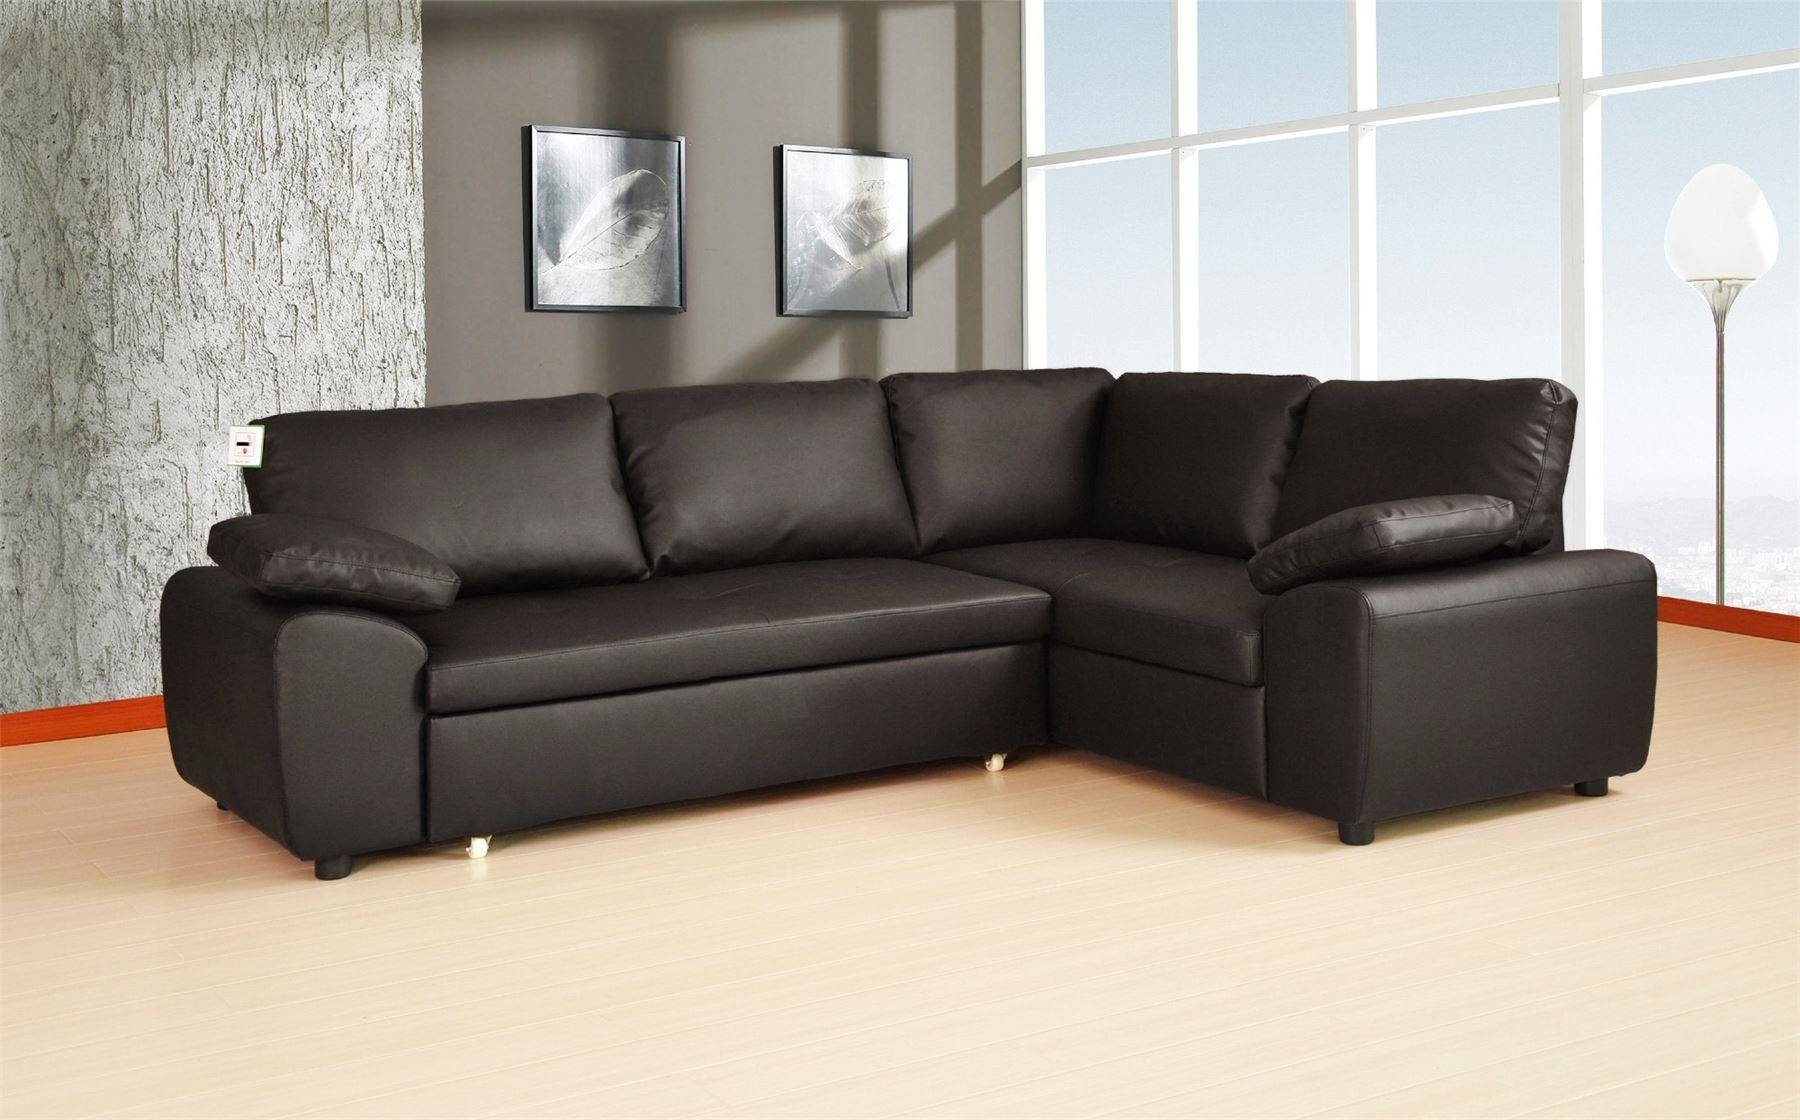 Leather Corner Sofa Sale | Tehranmix Decoration intended for Corner Sofa Bed Sale (Image 14 of 30)